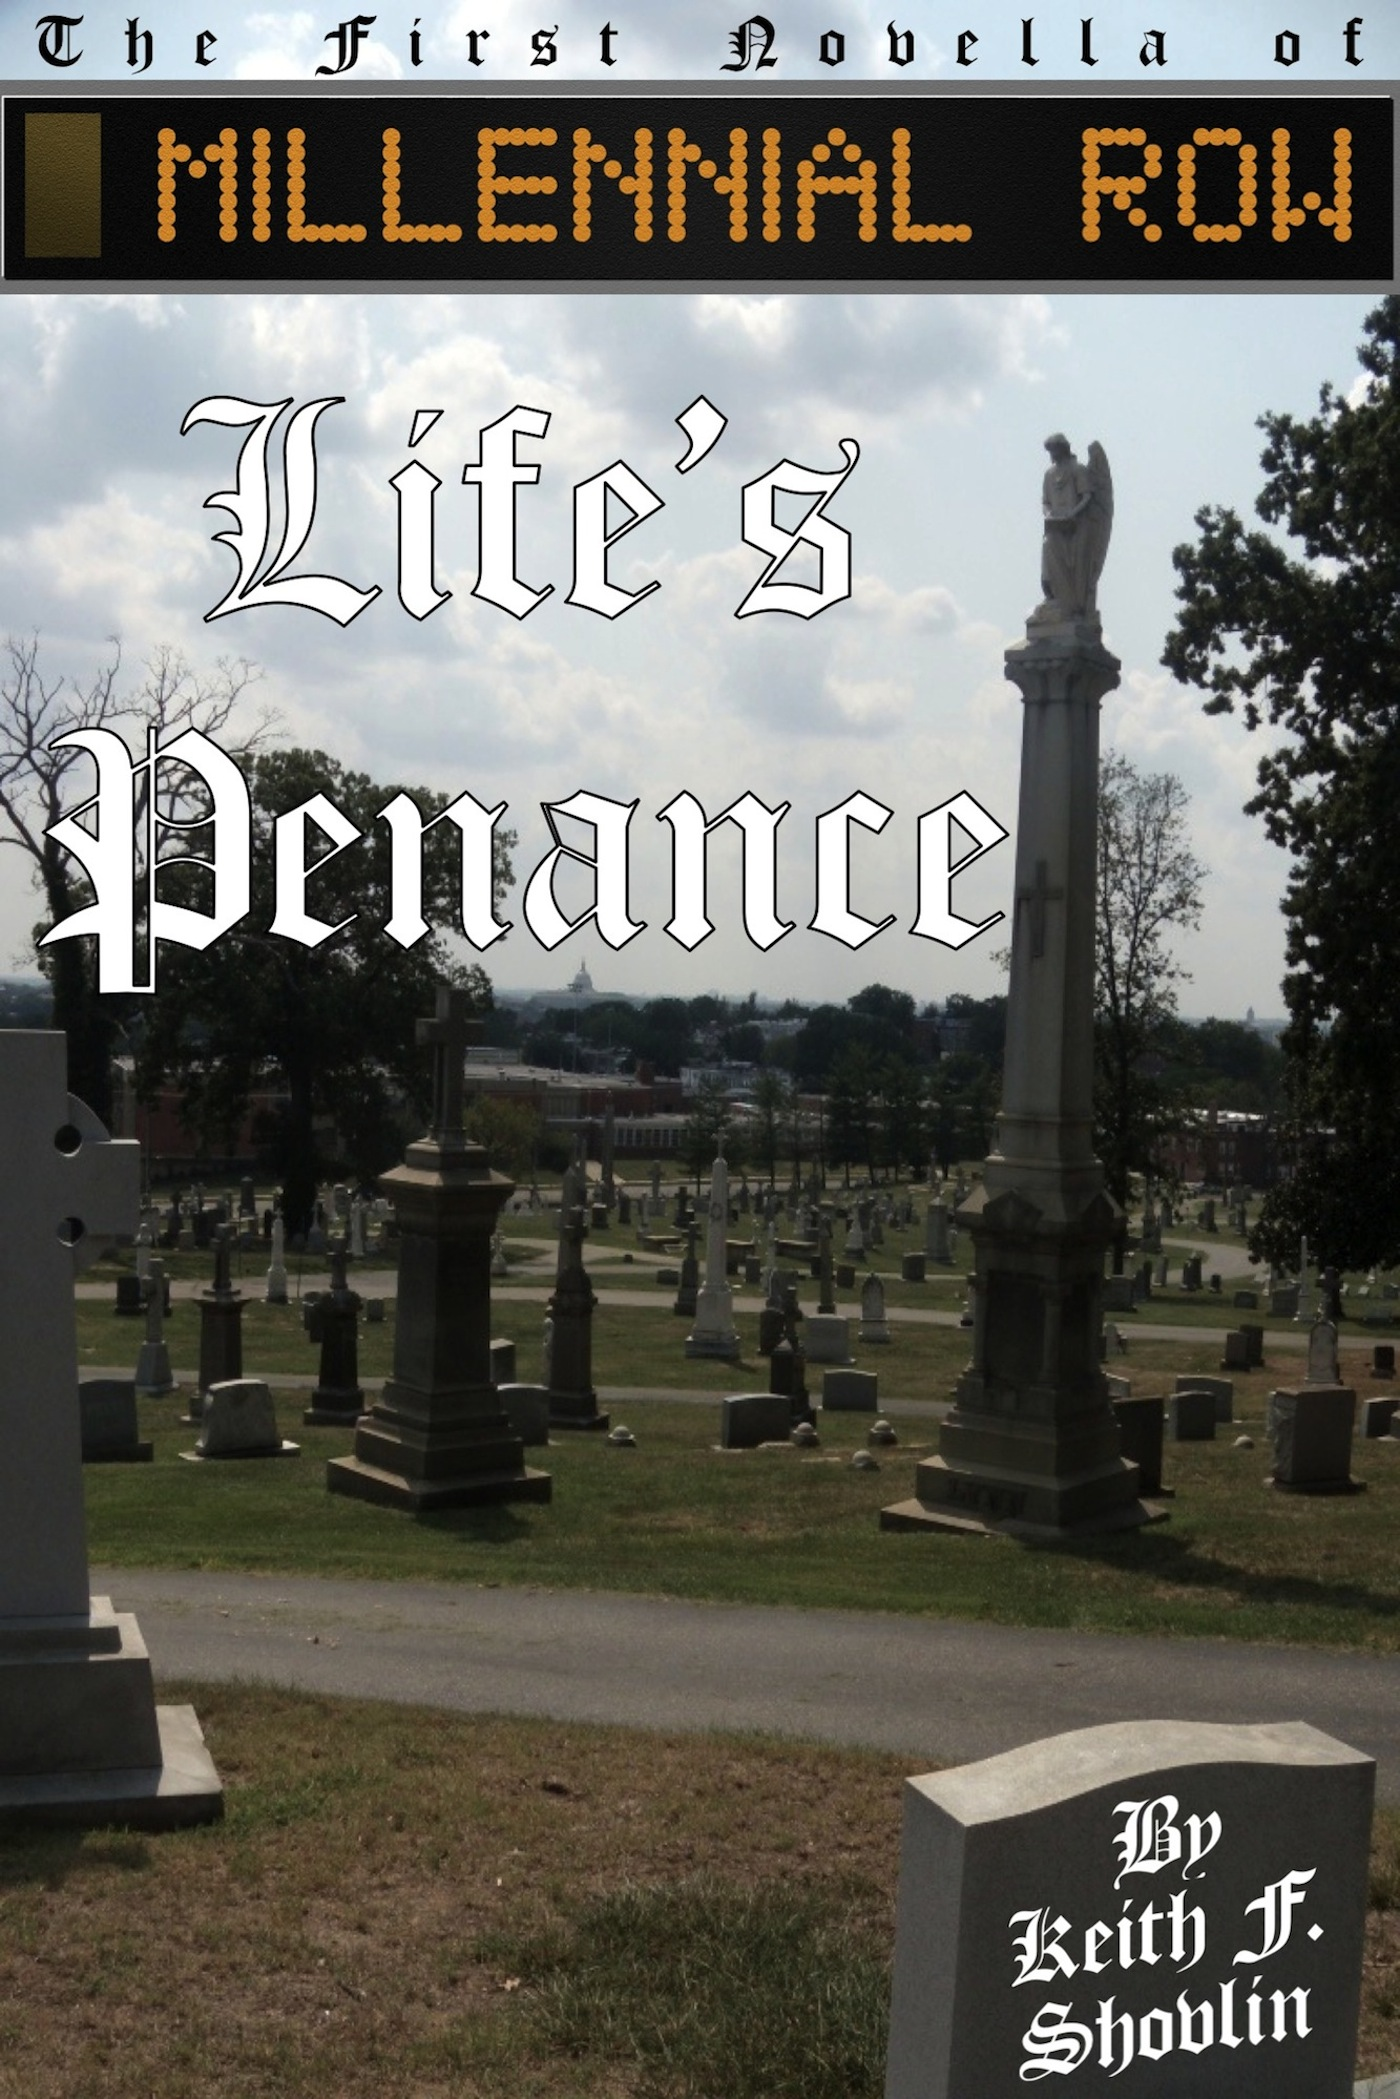 Life's Penance, the first novella of MILLENNIAL ROW, by Keith F. Shovlin   MILLENNIALROW.com/LifesPenance/  978-0-9859044-0-1   Live each day like it's your last!     Goodreads  -  Google Books    $1.99 download   Available as an eBook only from:  aois21 market  -  Lulu.com    -   Amazon  -   Barnes & Noble  -   iBookstore  -   Smashwords  -   KoboBooks      Google Play